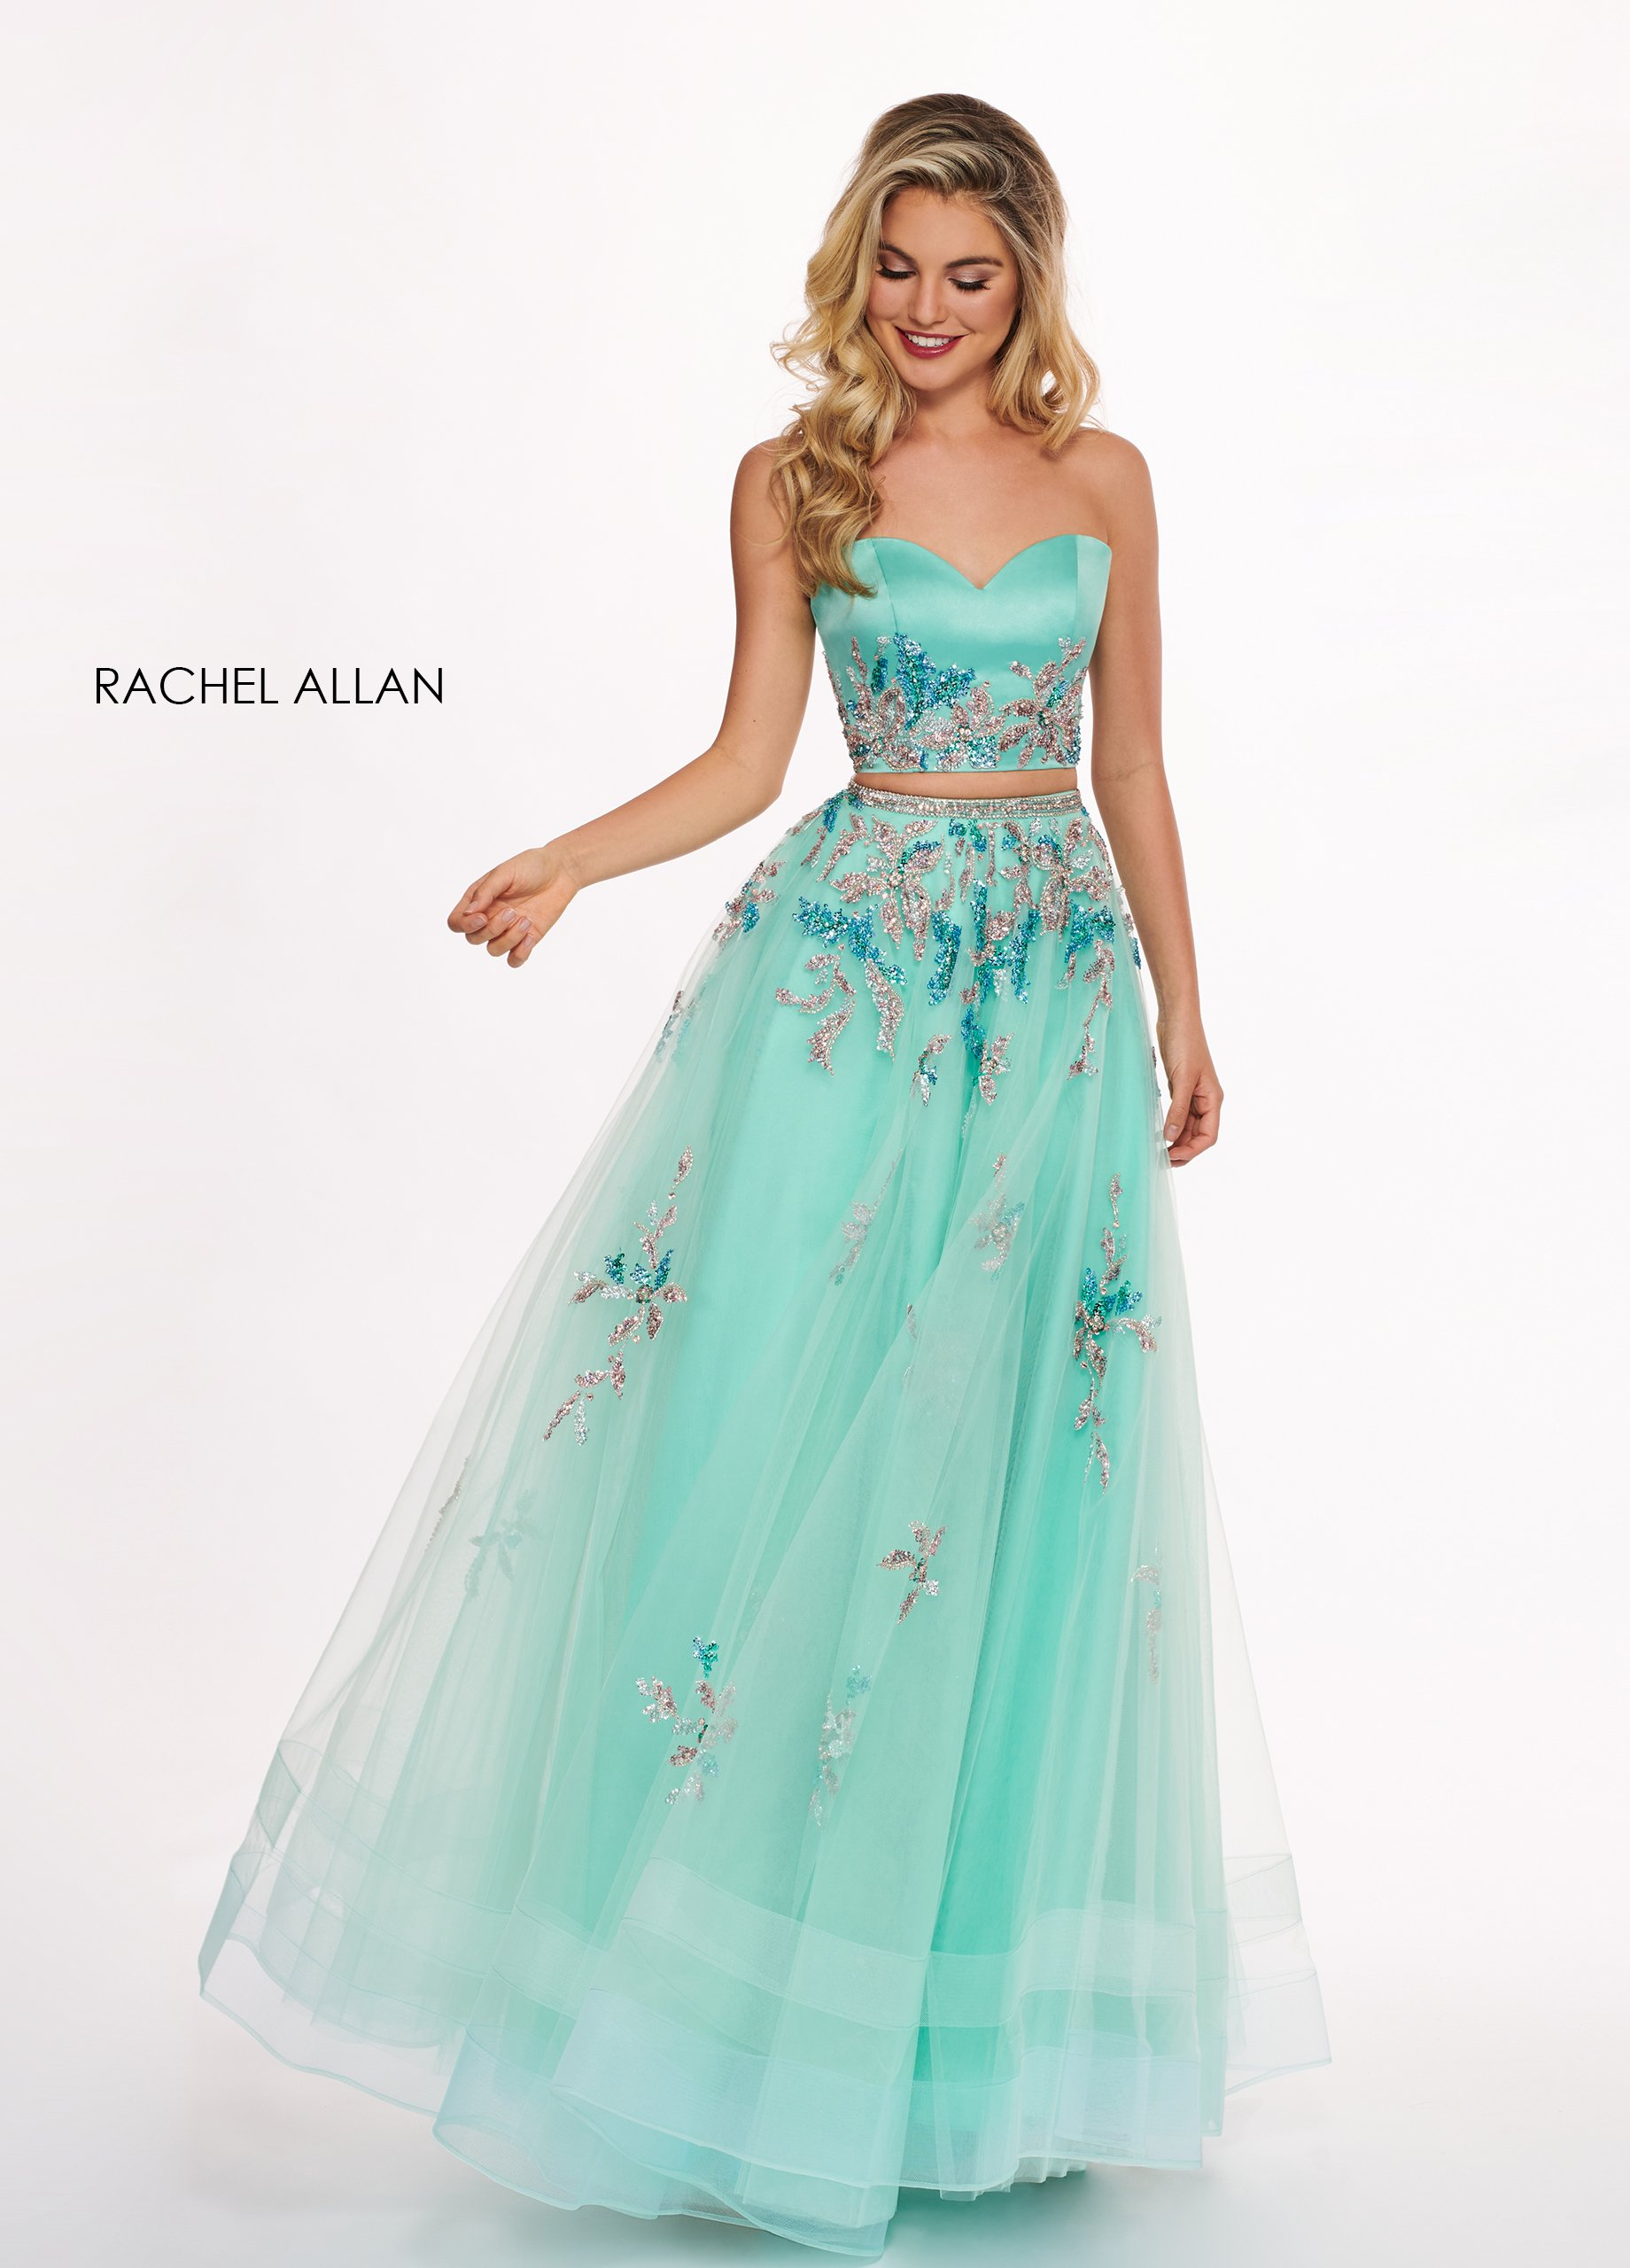 Strapless Two-Piece Prom Dresses in Emerald Color